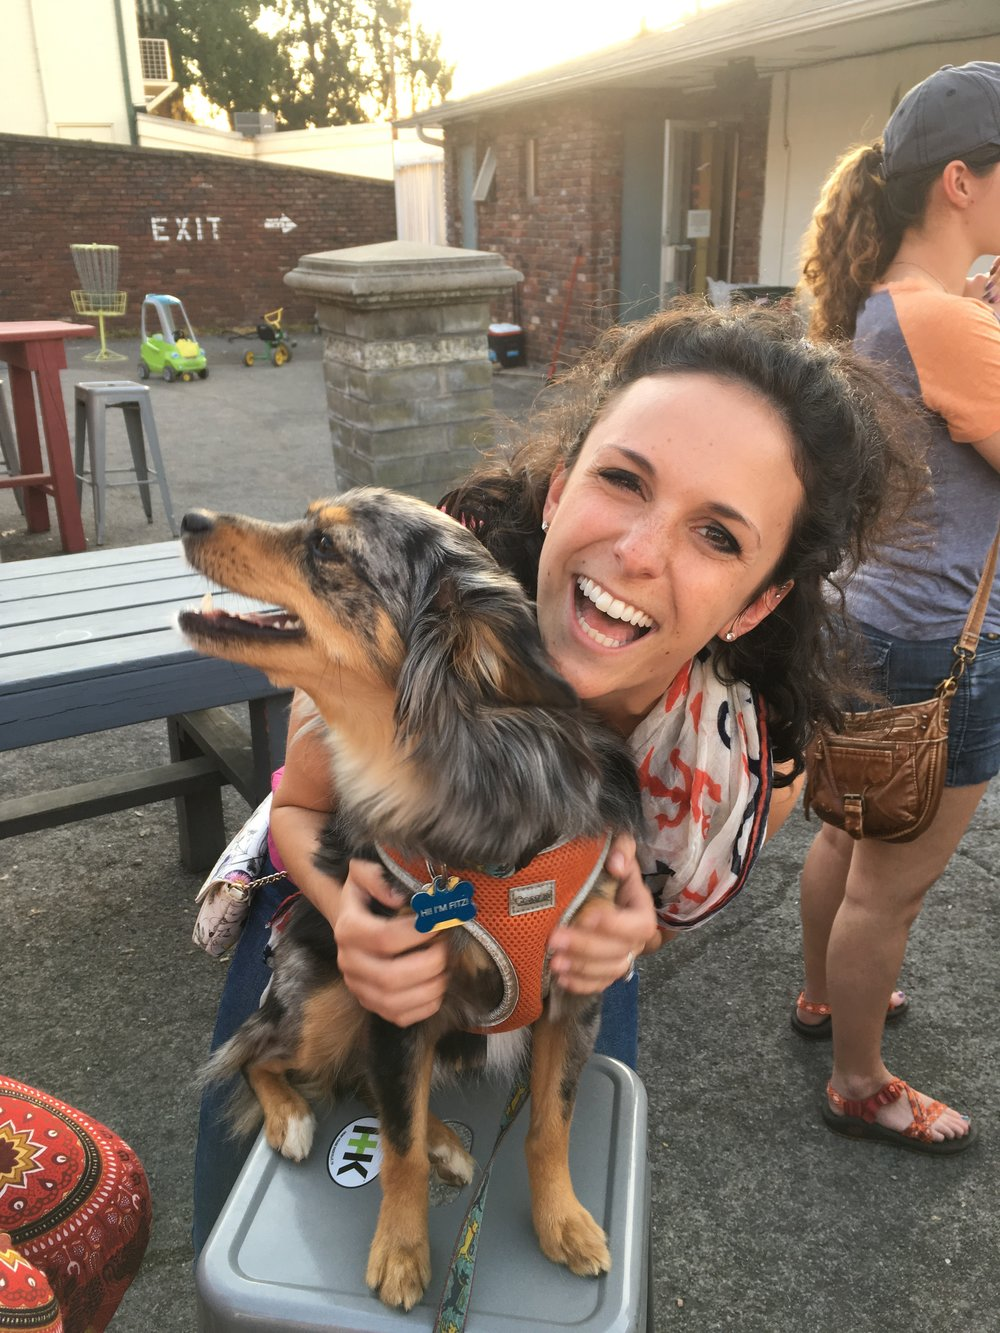 Caroline Billings - I am working towards a DVM/PhD at the University of Tennessee. I'm about to start my clinical rotations for my veterinary program, which is exciting! As for research, my area of interest is Regenerative Medicine. In my non-science life, I love cute dogs, craft beer and instructing barre3 classes!